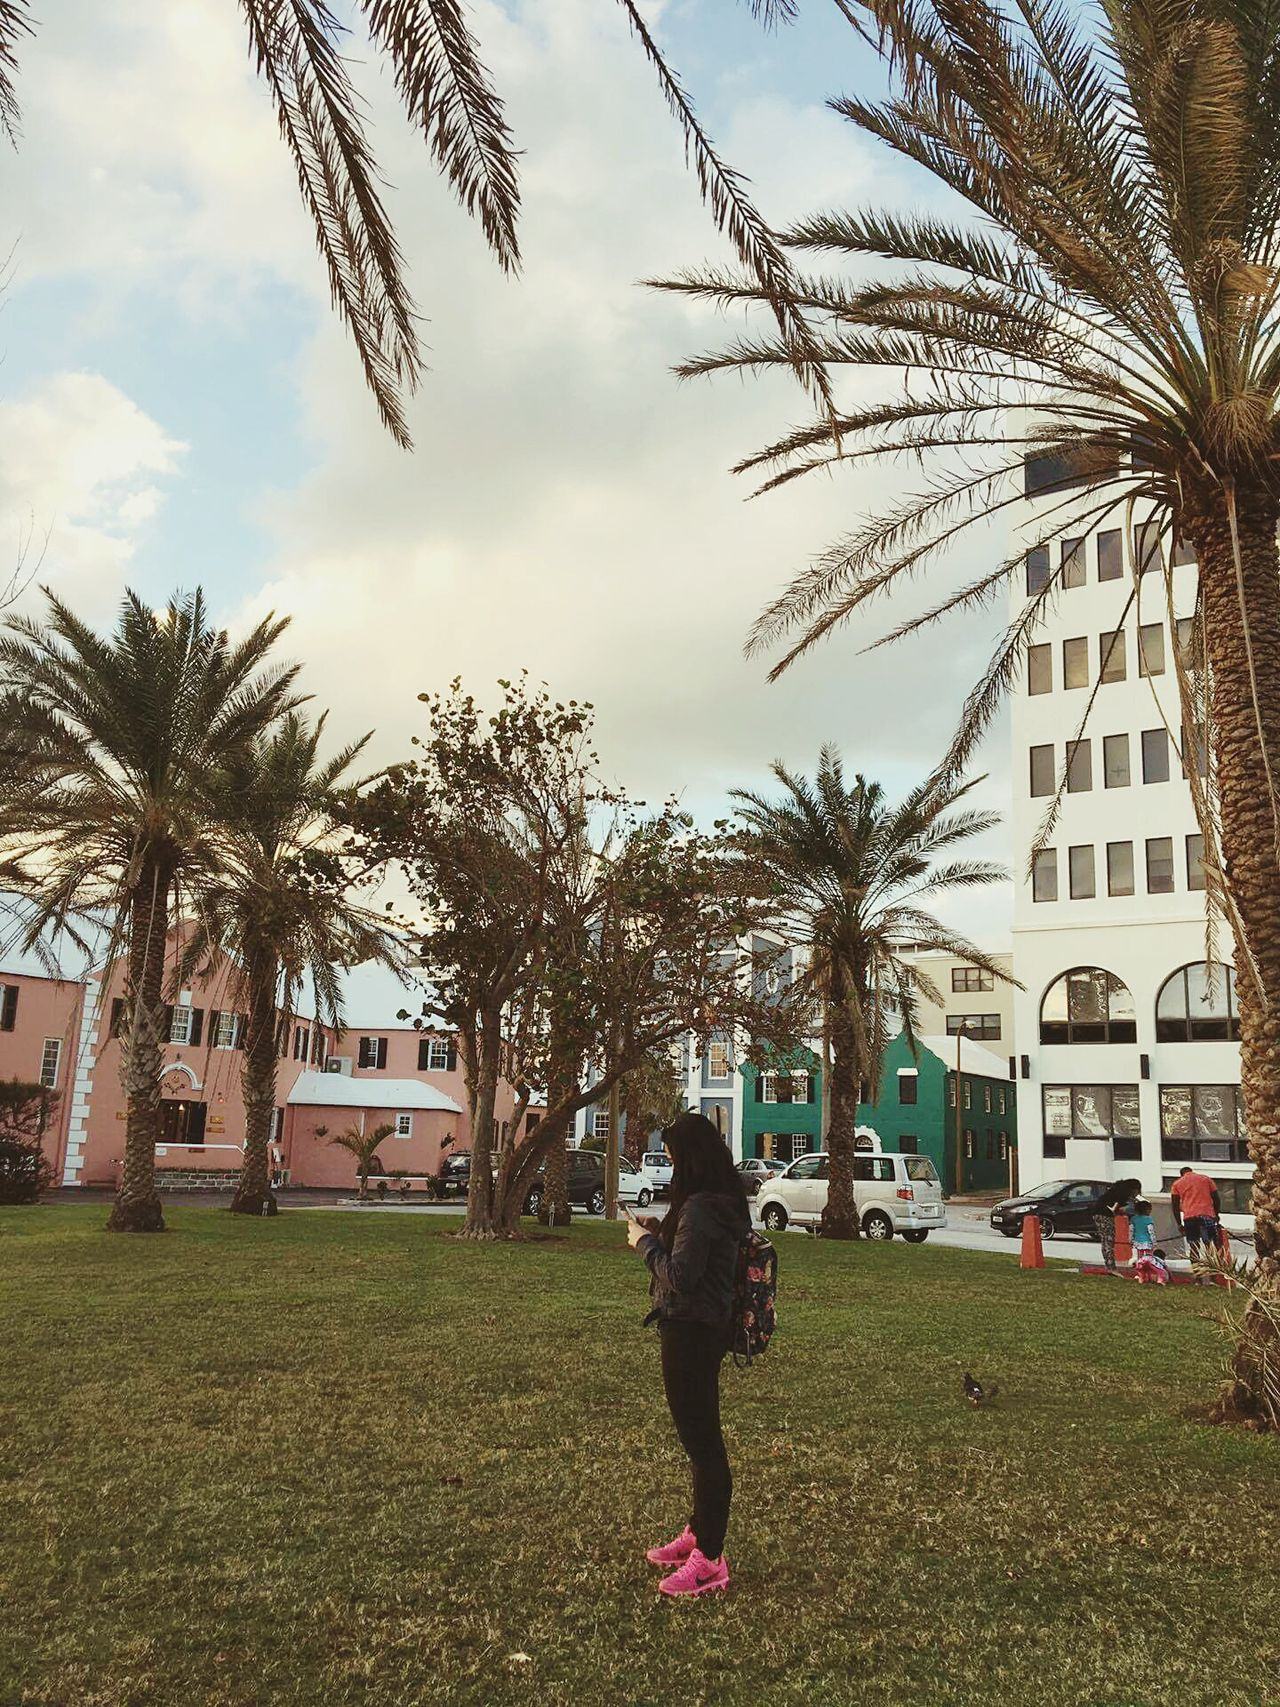 Palm Tree Building Exterior Architecture Outdoors Full Length Palm Tree Building Exterior Architecture Outdoors Full Length One Person People Tree Built Structure Cloud - Sky Sky Playing Day Street Travel Beauty In Nature Leisure Activity Travel Destinations EyeEm Best Shots Streetphotography